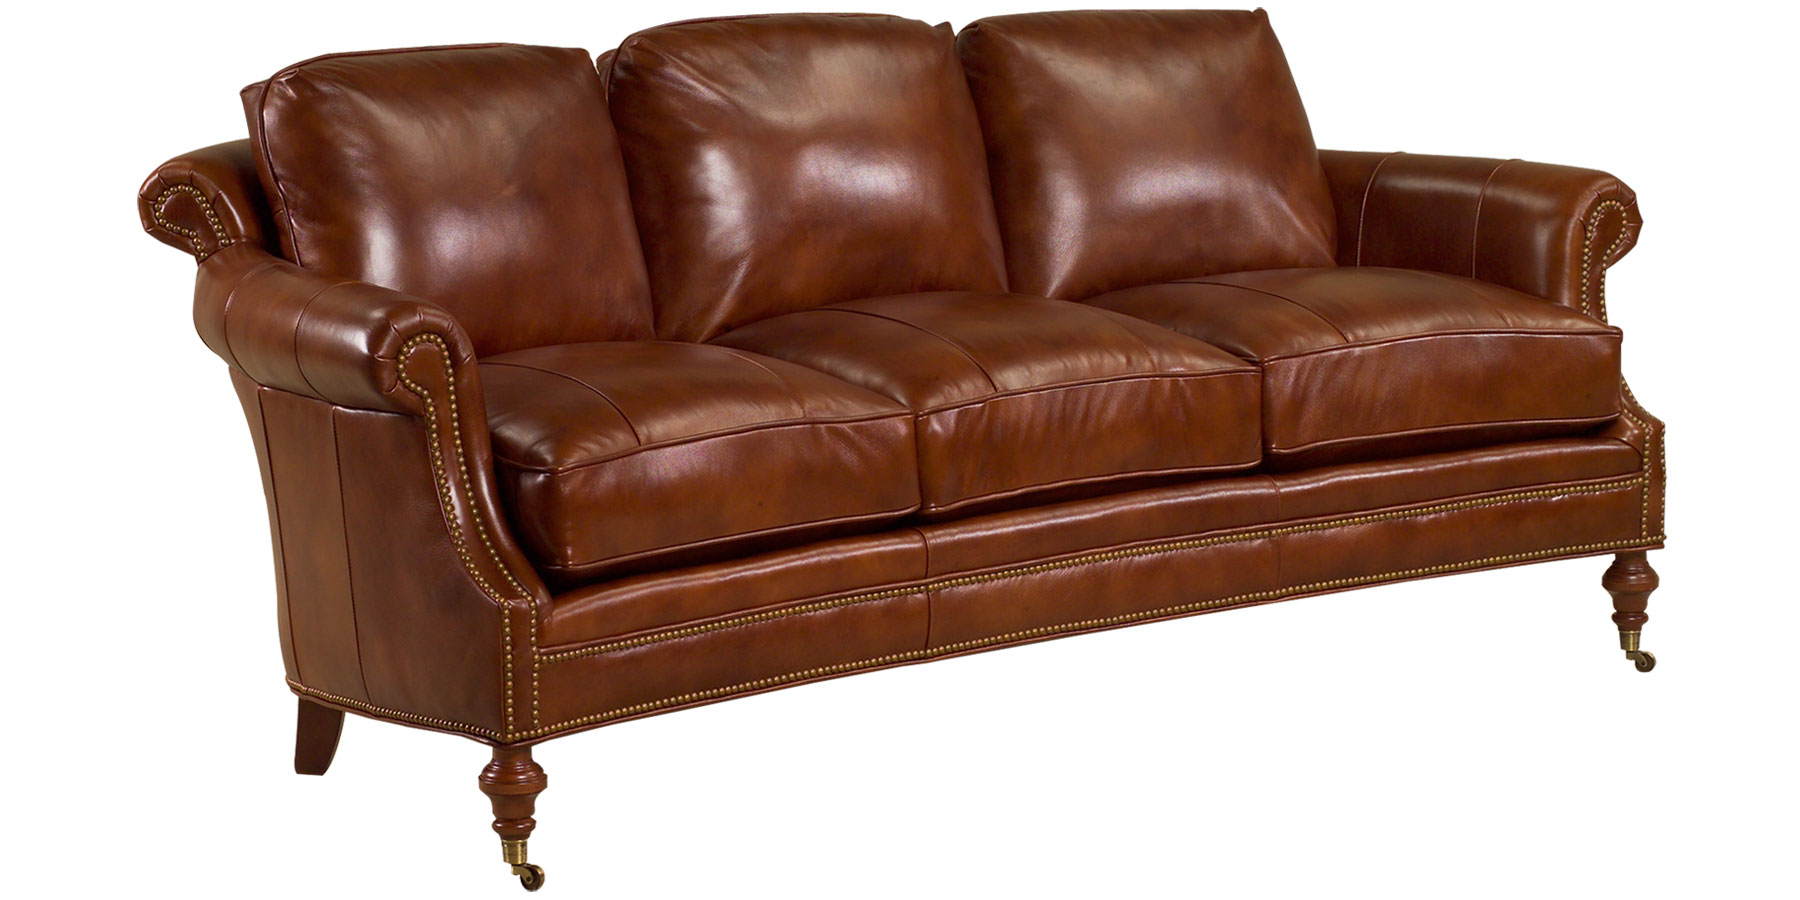 Wilson leather traditional furniture collection for Traditional leather sofas furniture